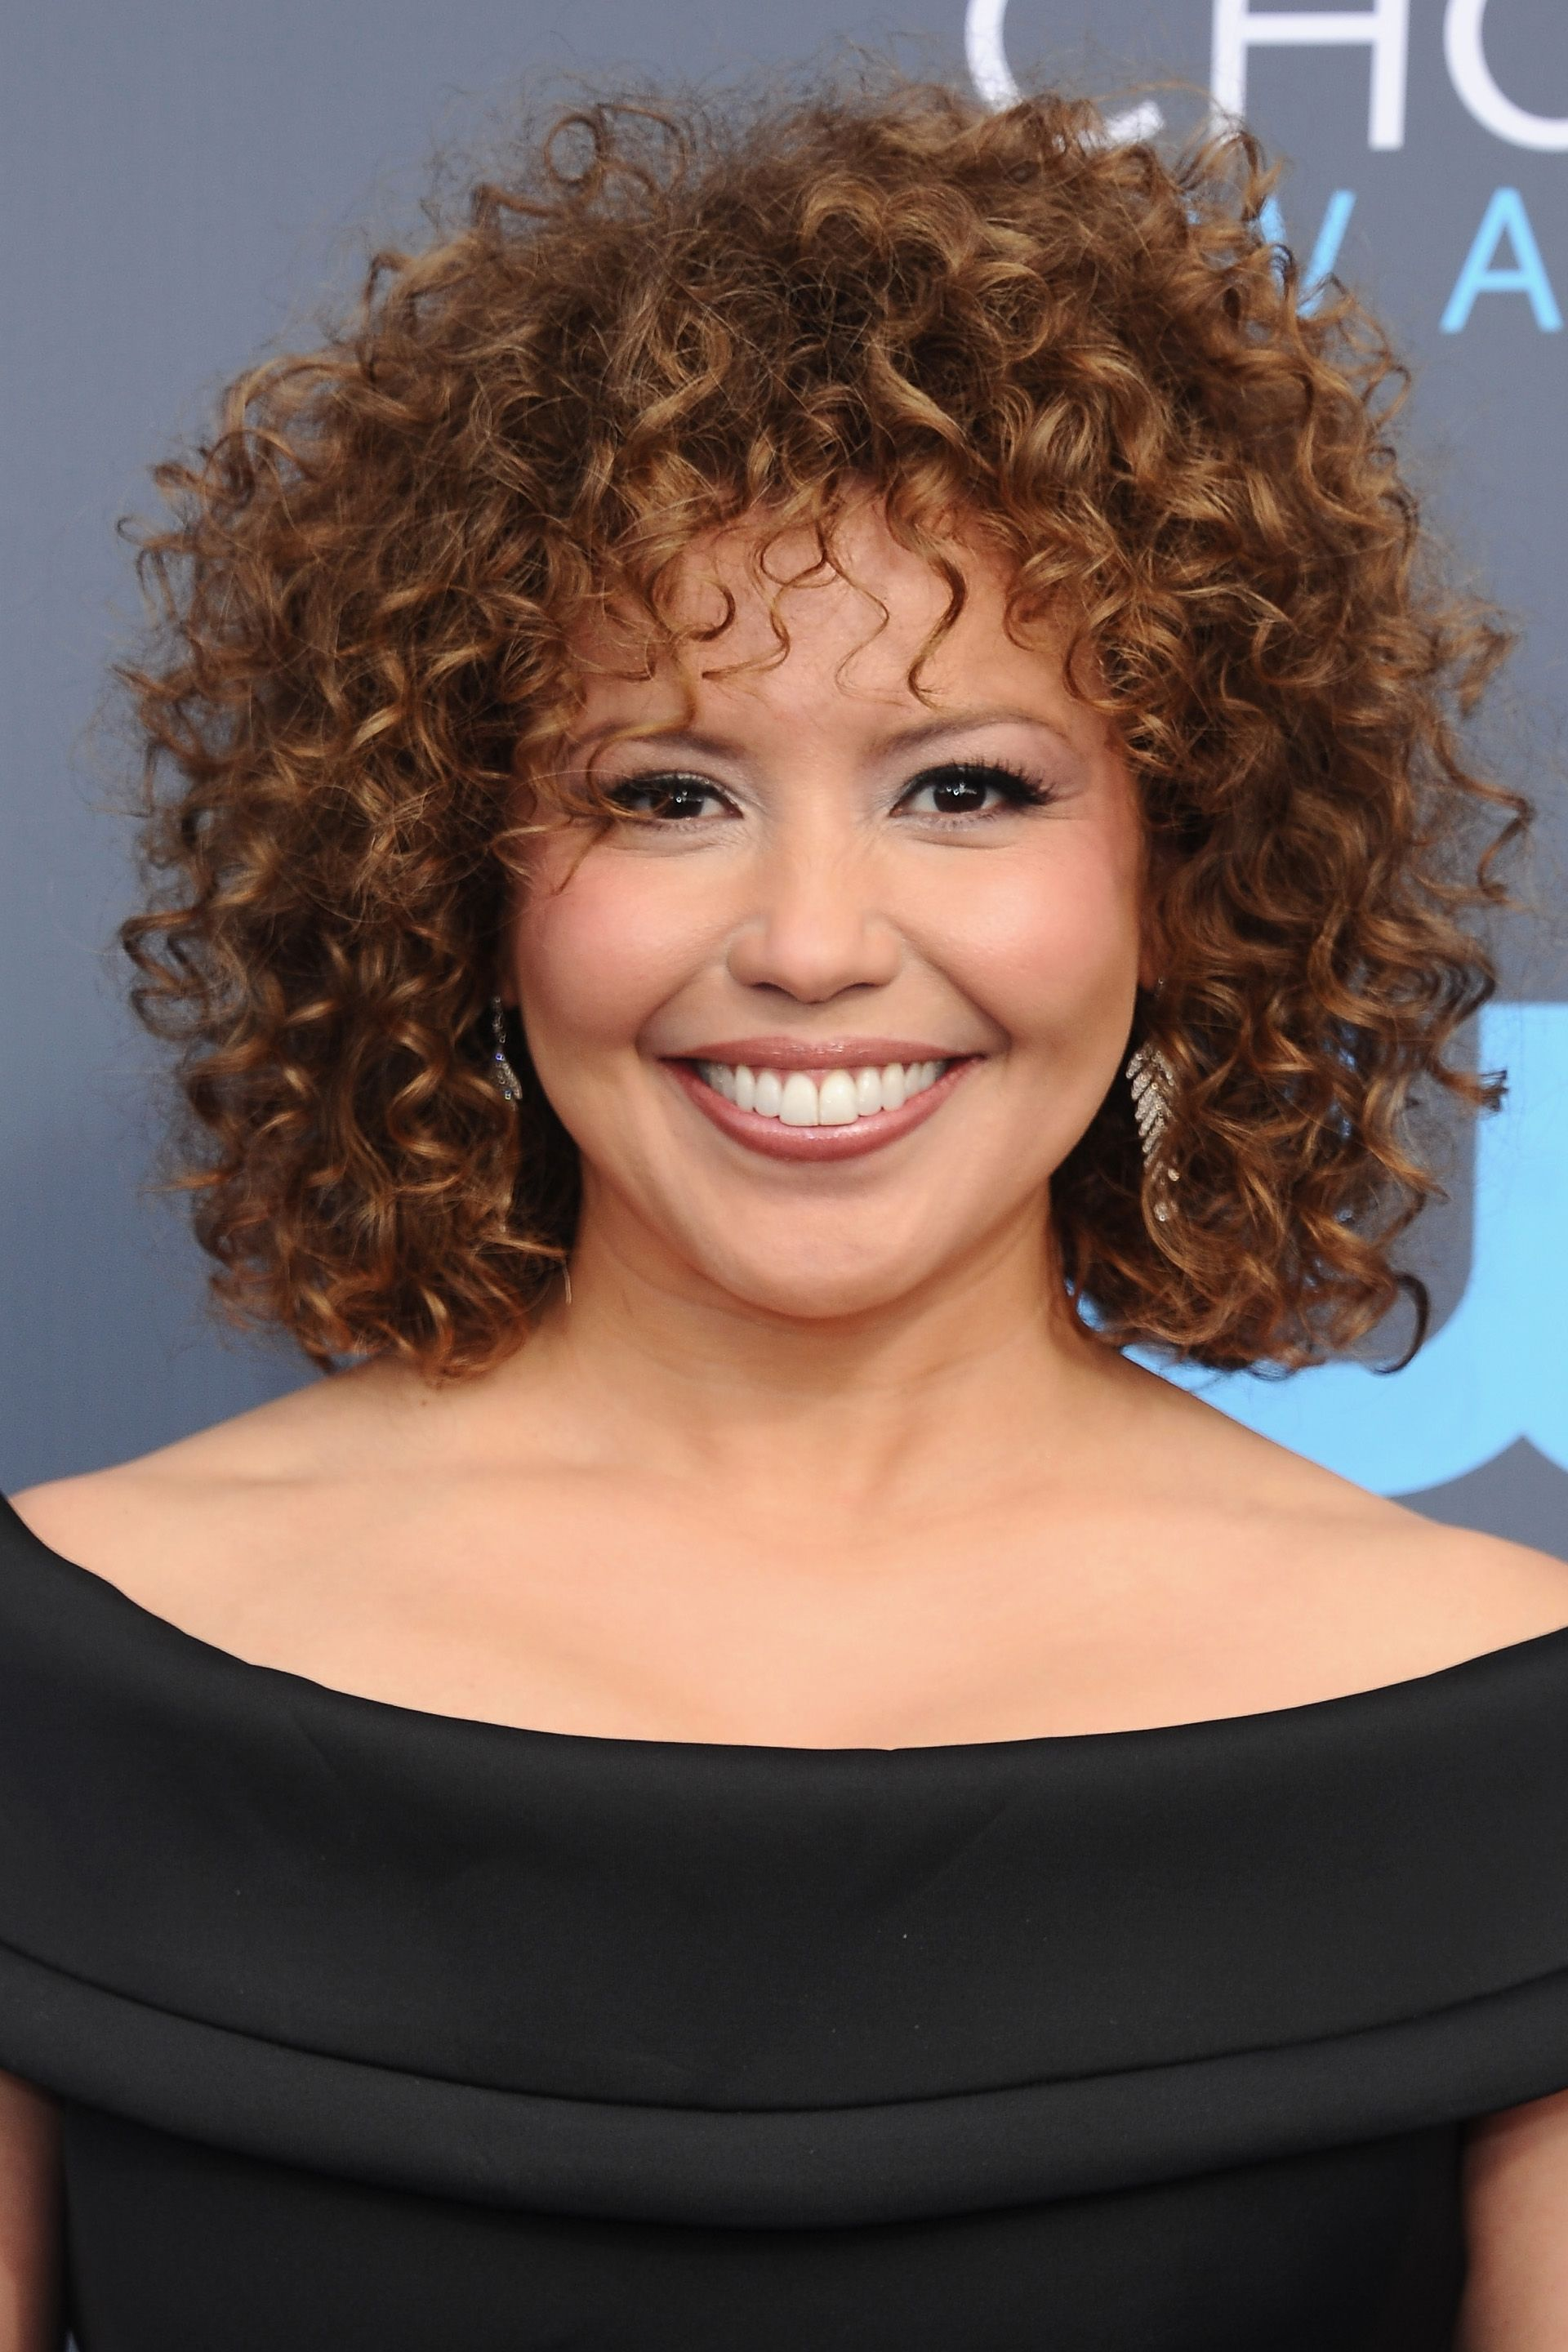 40 Celebrity Short Curly Hair Ideas - Short Haircuts and Hairstyles ...